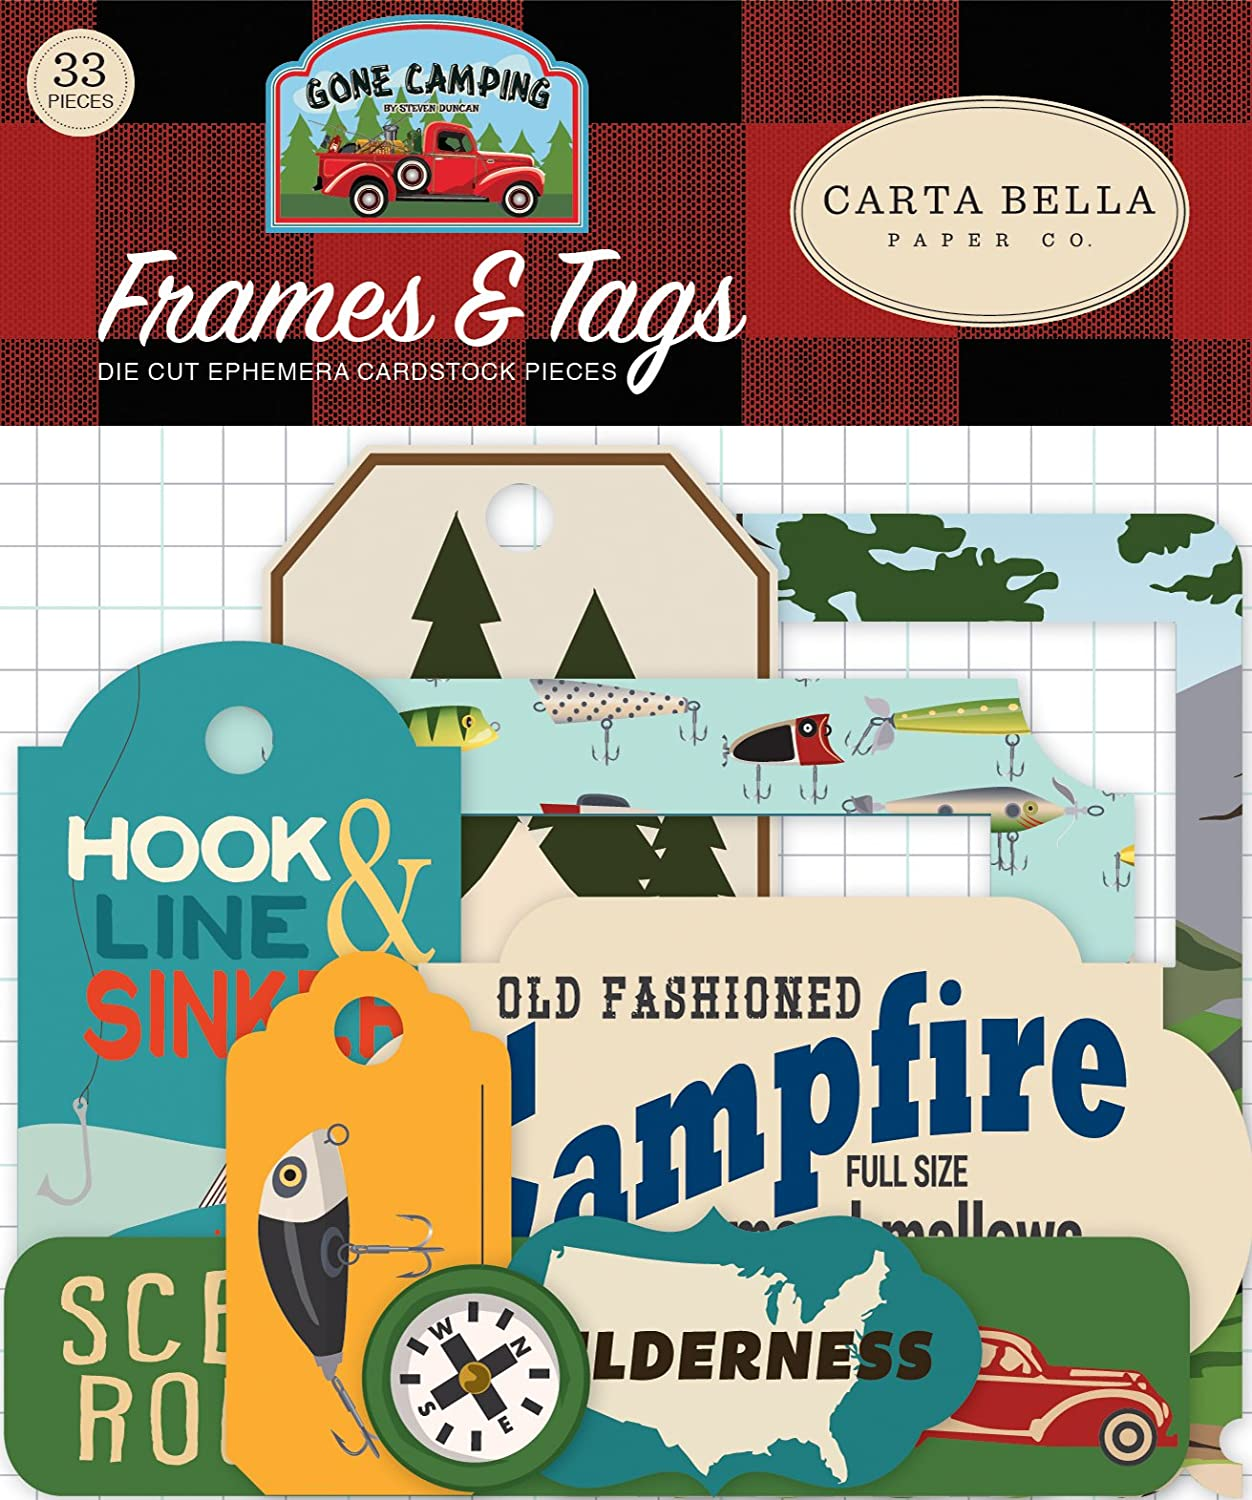 Carta Bella Paper Company CBGC85025 Gone Camping Frames & Tags Ephemera die Cut, Blue, Forest Green, red, Brown Echo Park Paper Company